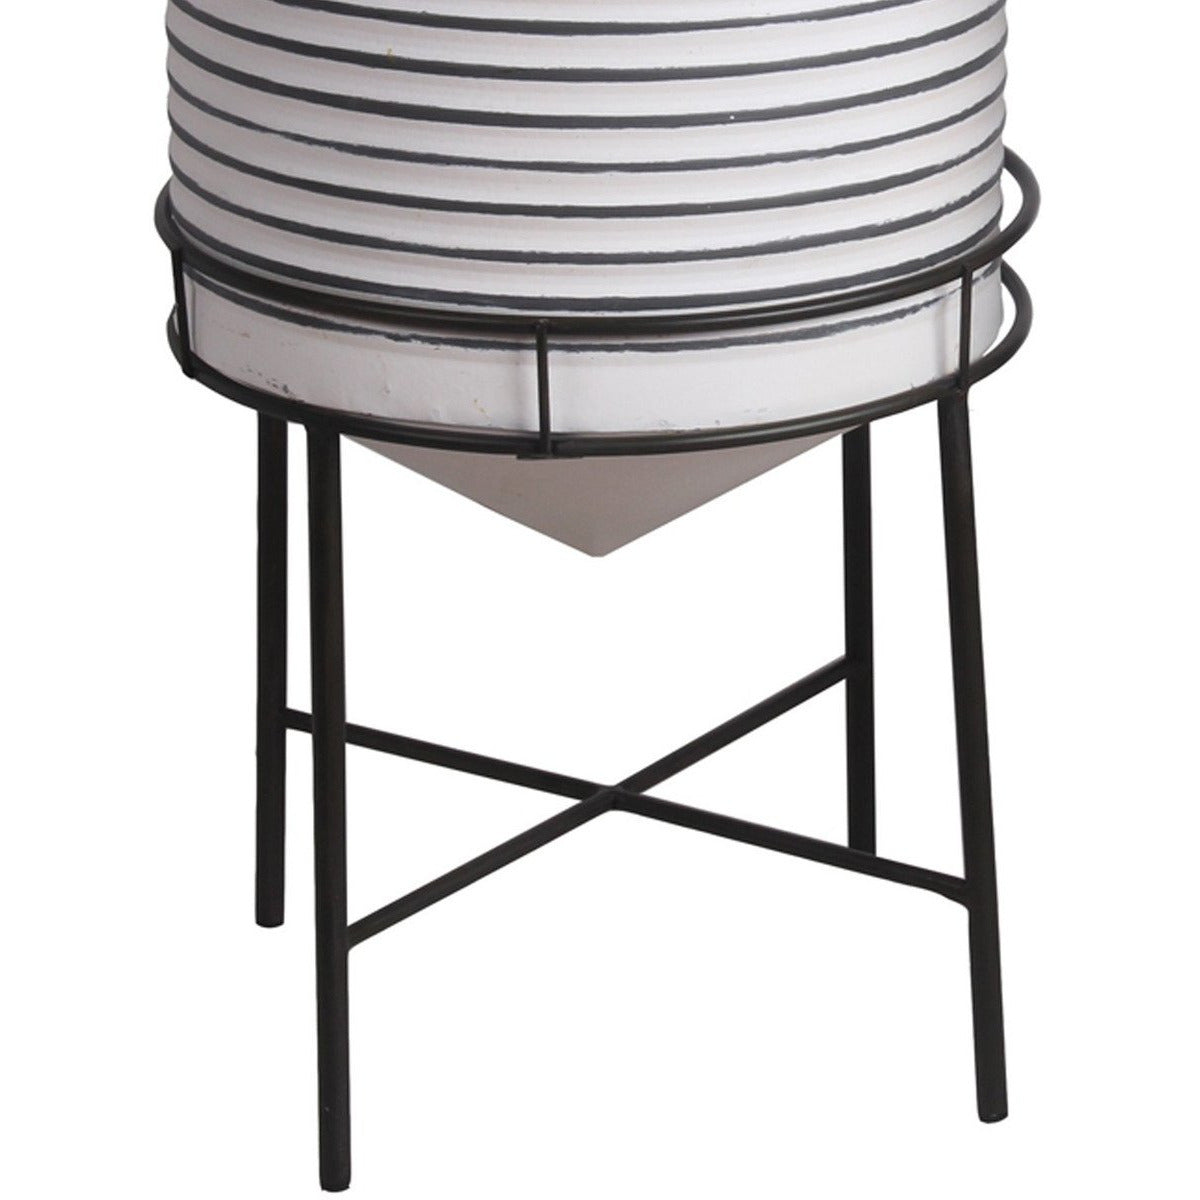 Planters - Round Cylindrical Metal Planter With Tubular Legs, Set Of 2,White And Black